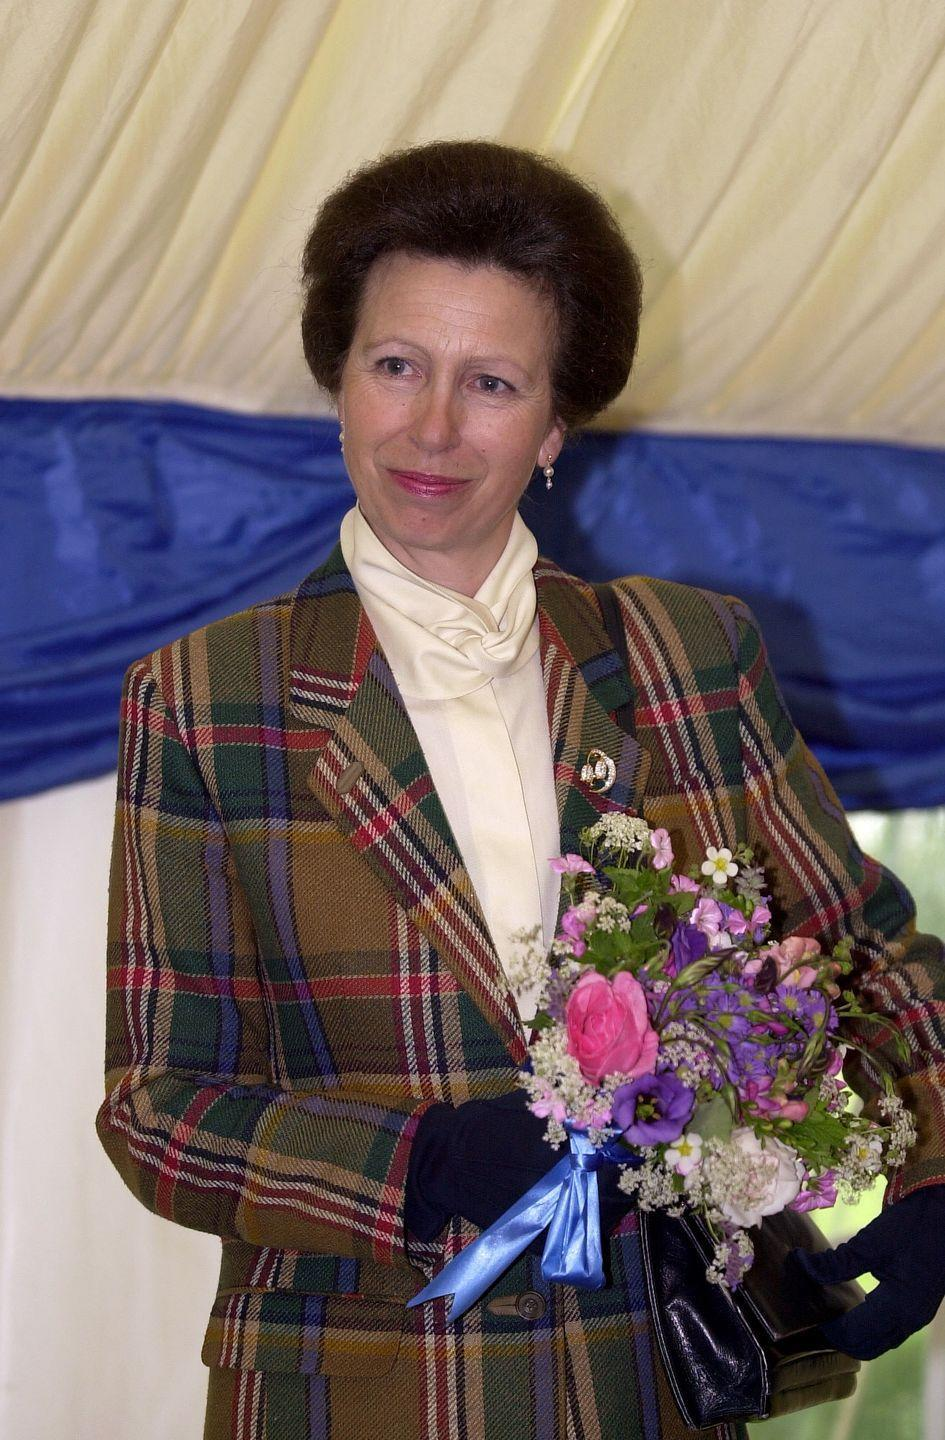 """<p>Why not try a plaid blazer, like the <a href=""""https://www.townandcountrymag.com/society/tradition/a13075050/princess-anne-queen-elizabeth-daughter-facts/"""" rel=""""nofollow noopener"""" target=""""_blank"""" data-ylk=""""slk:Queen's only daughter Princess Anne"""" class=""""link rapid-noclick-resp"""">Queen's only daughter Princess Anne</a> did back in 2000? </p>"""